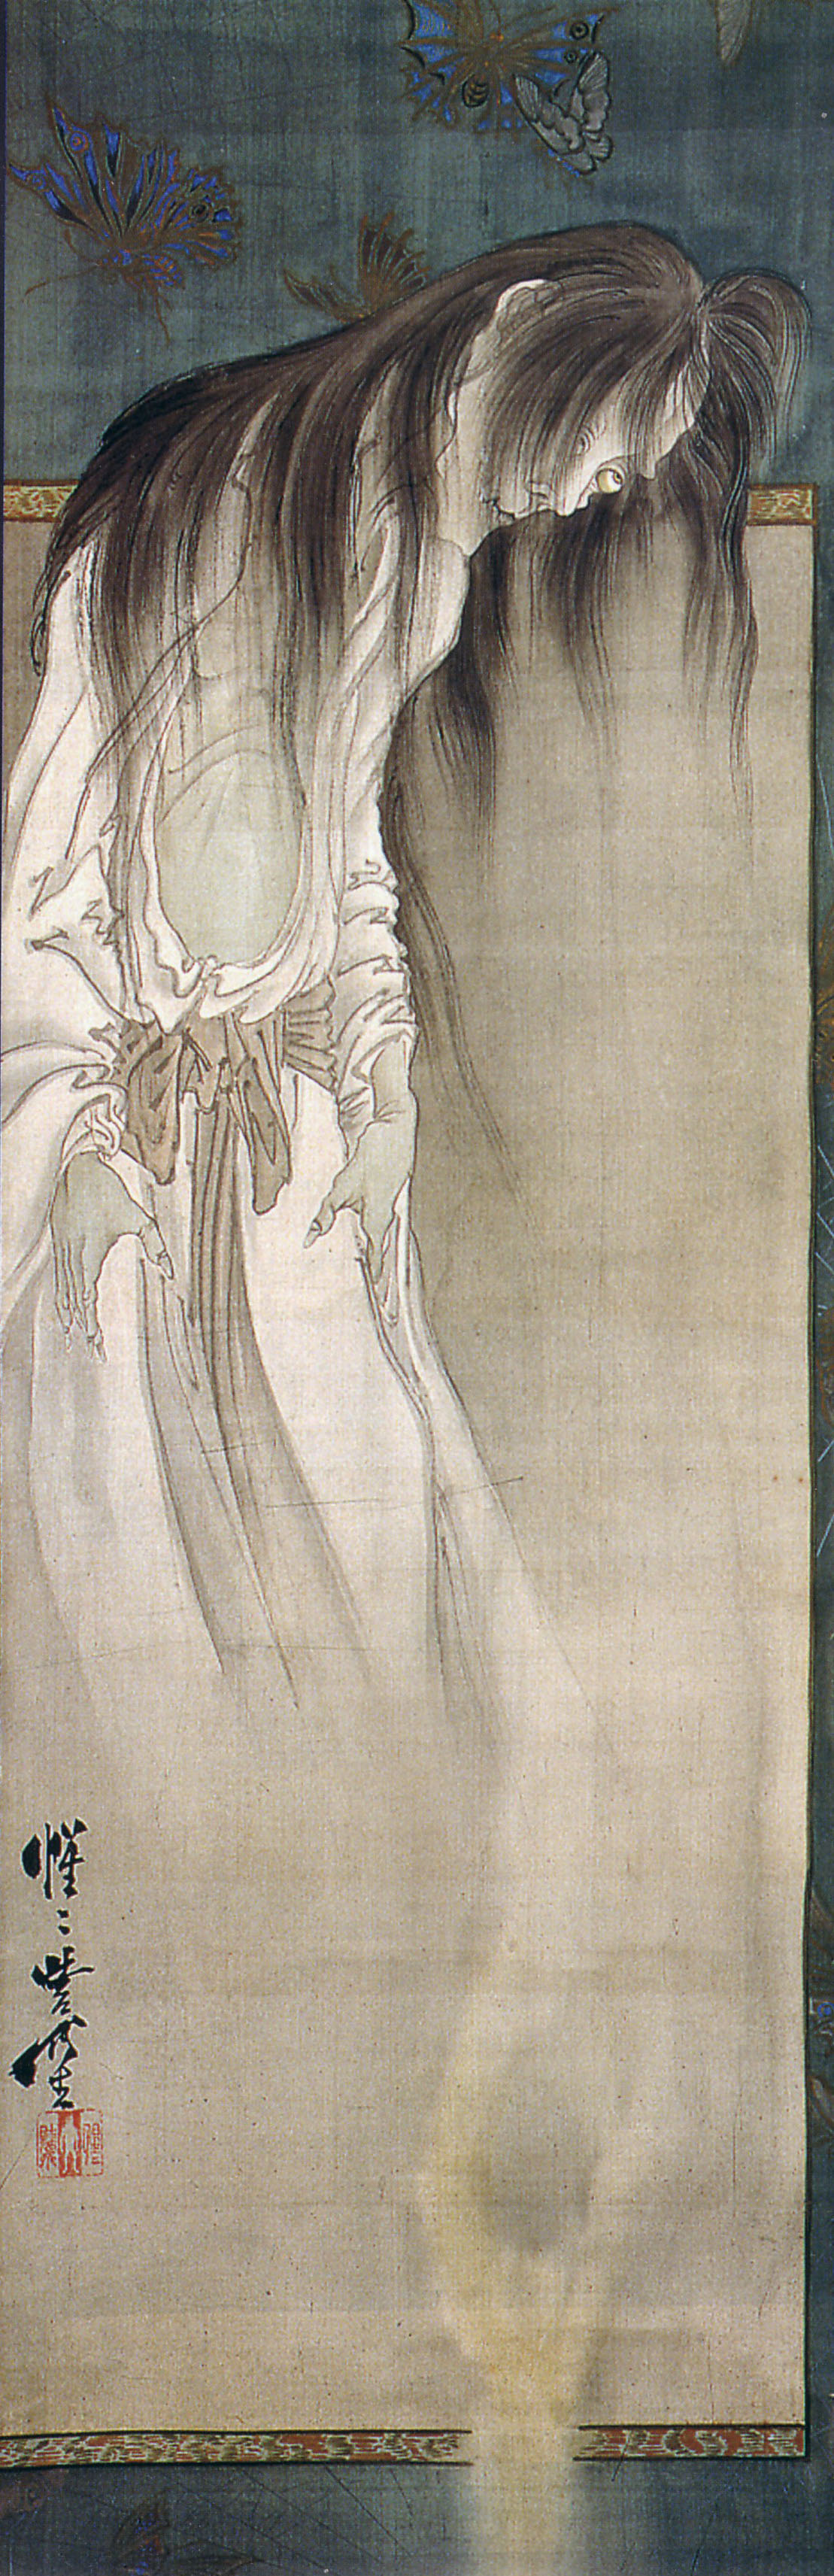 kyosai_ghost_1_large